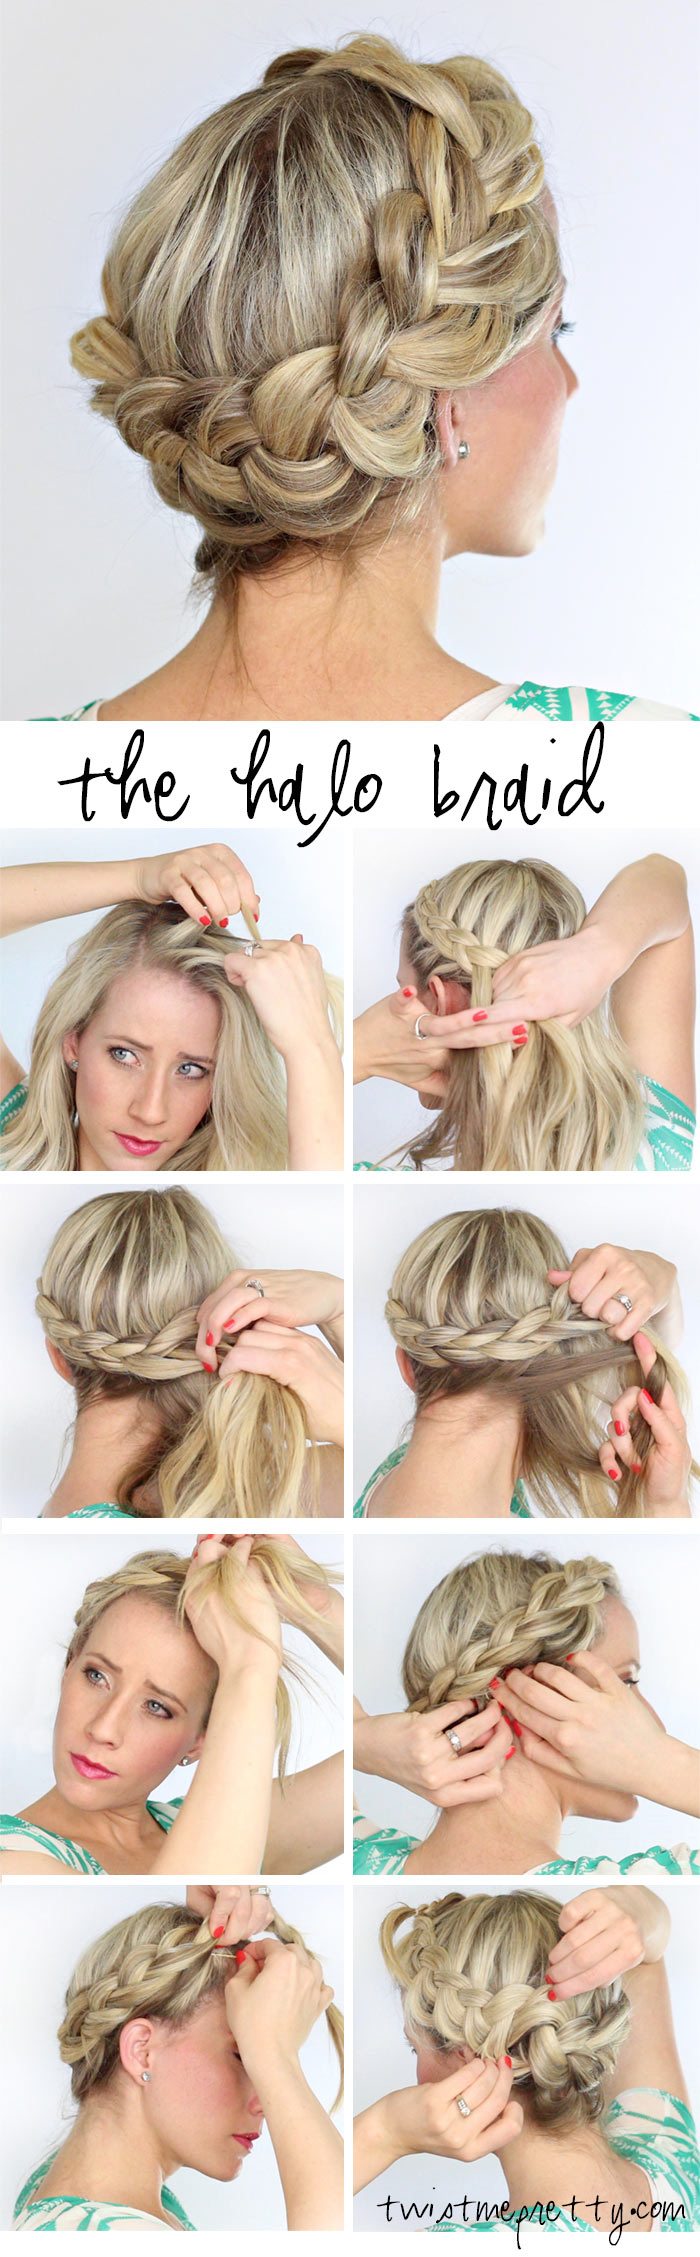 A Fat Halo Braid Twist Me Pretty